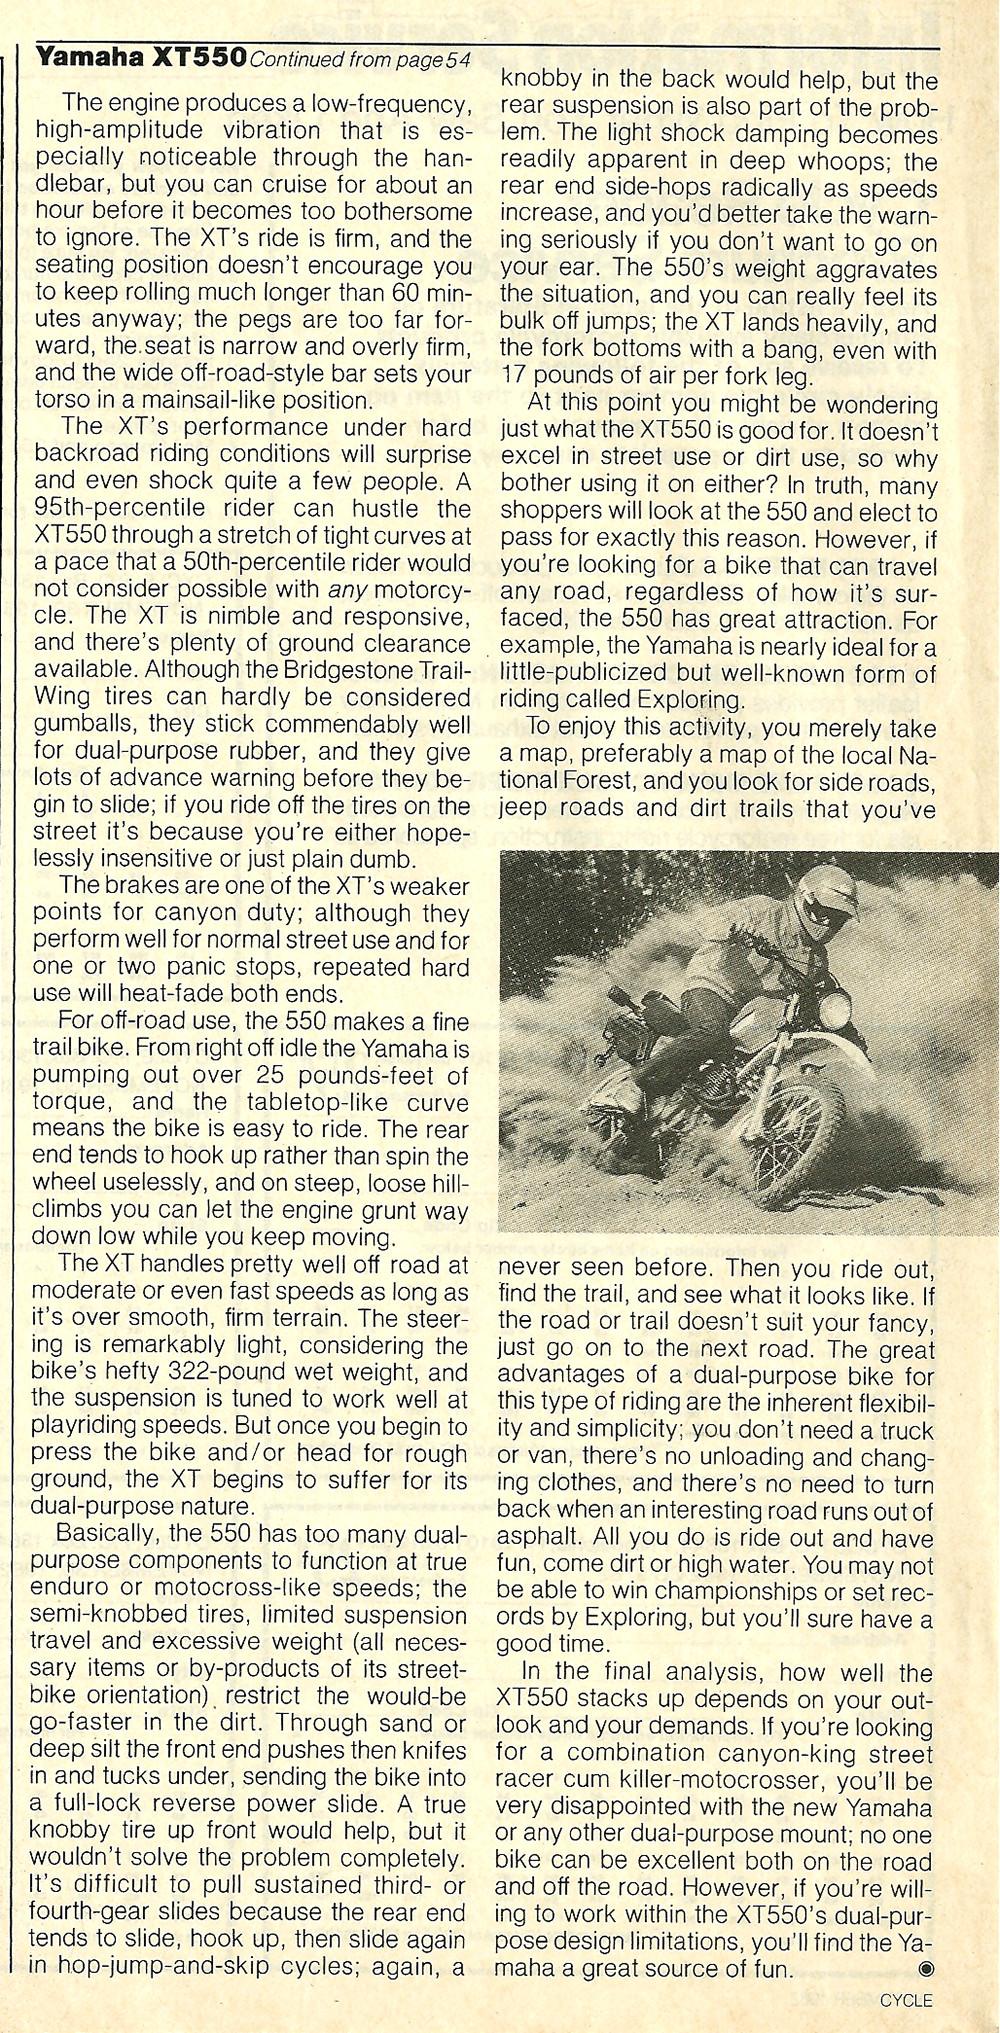 1982 Yamaha XT550J off road test 8.jpg